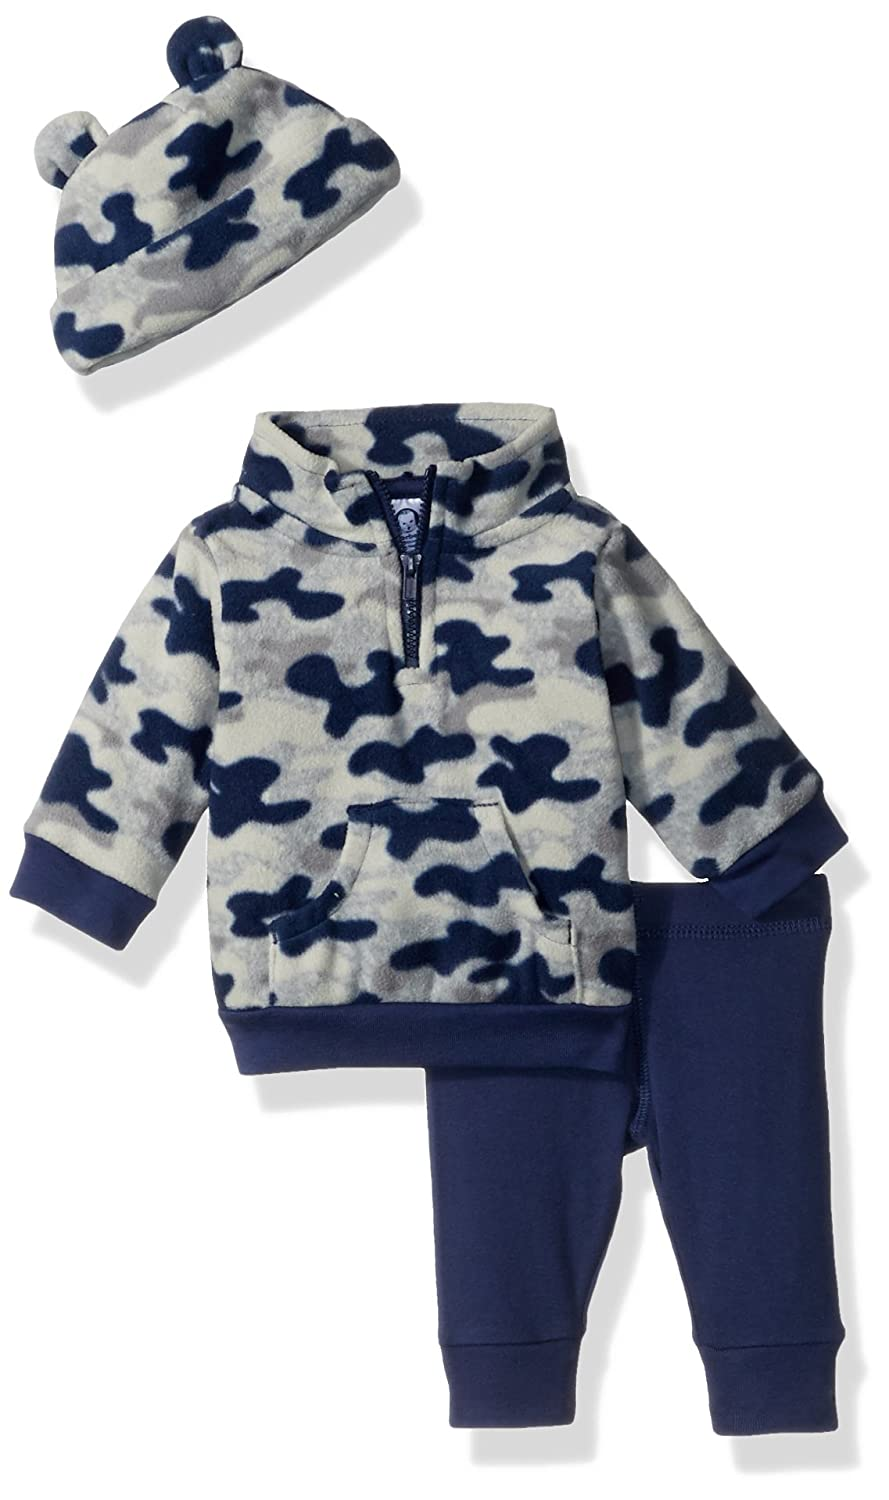 Gerber Baby Boys' 3-Piece Top, Pant and Cap Set Gerber Children' s Apparel